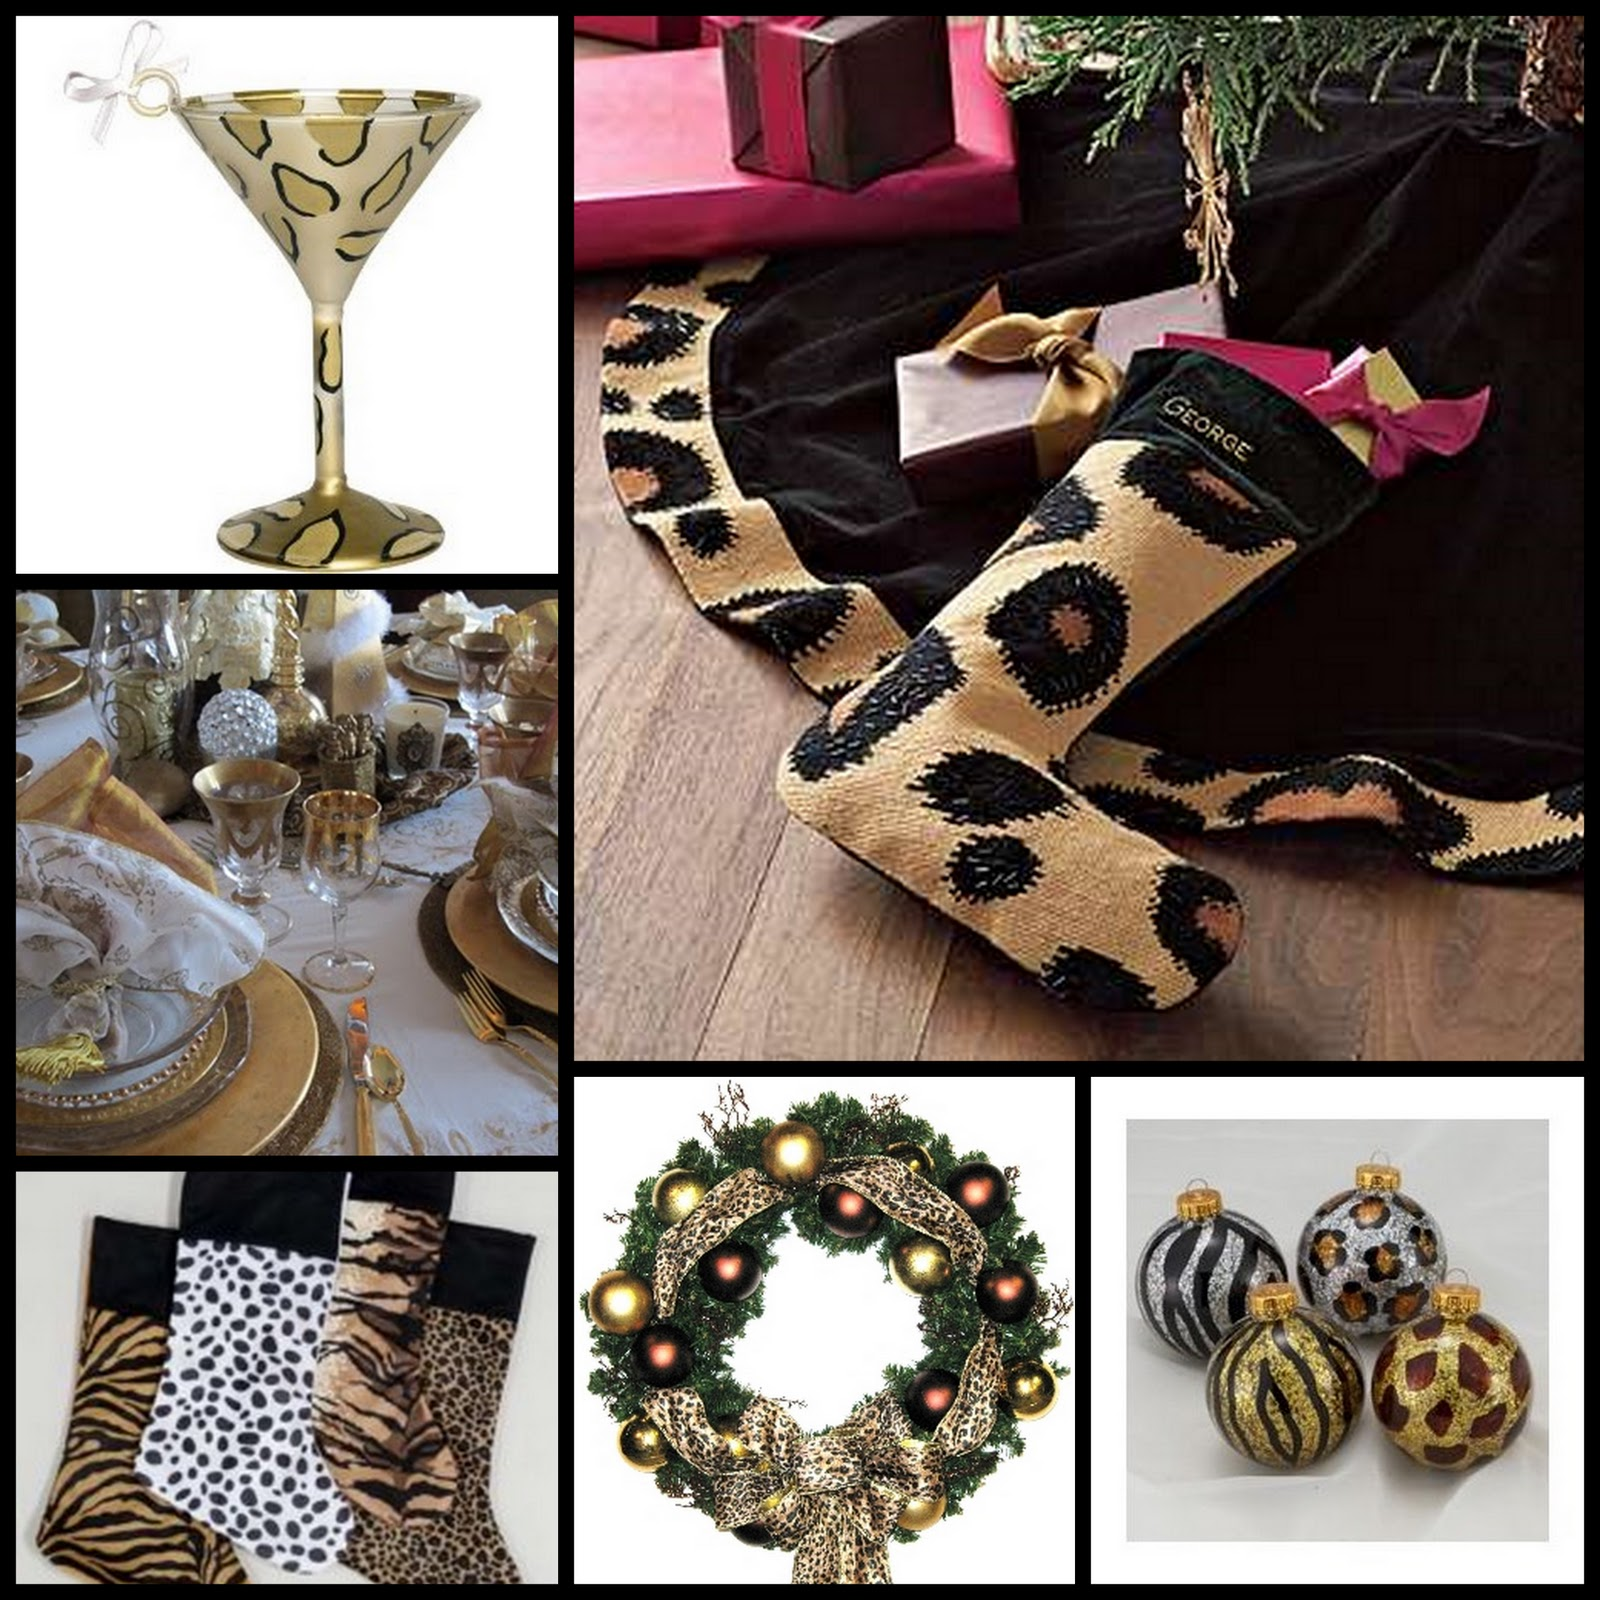 metro luxe events candice vallone animal print christmas